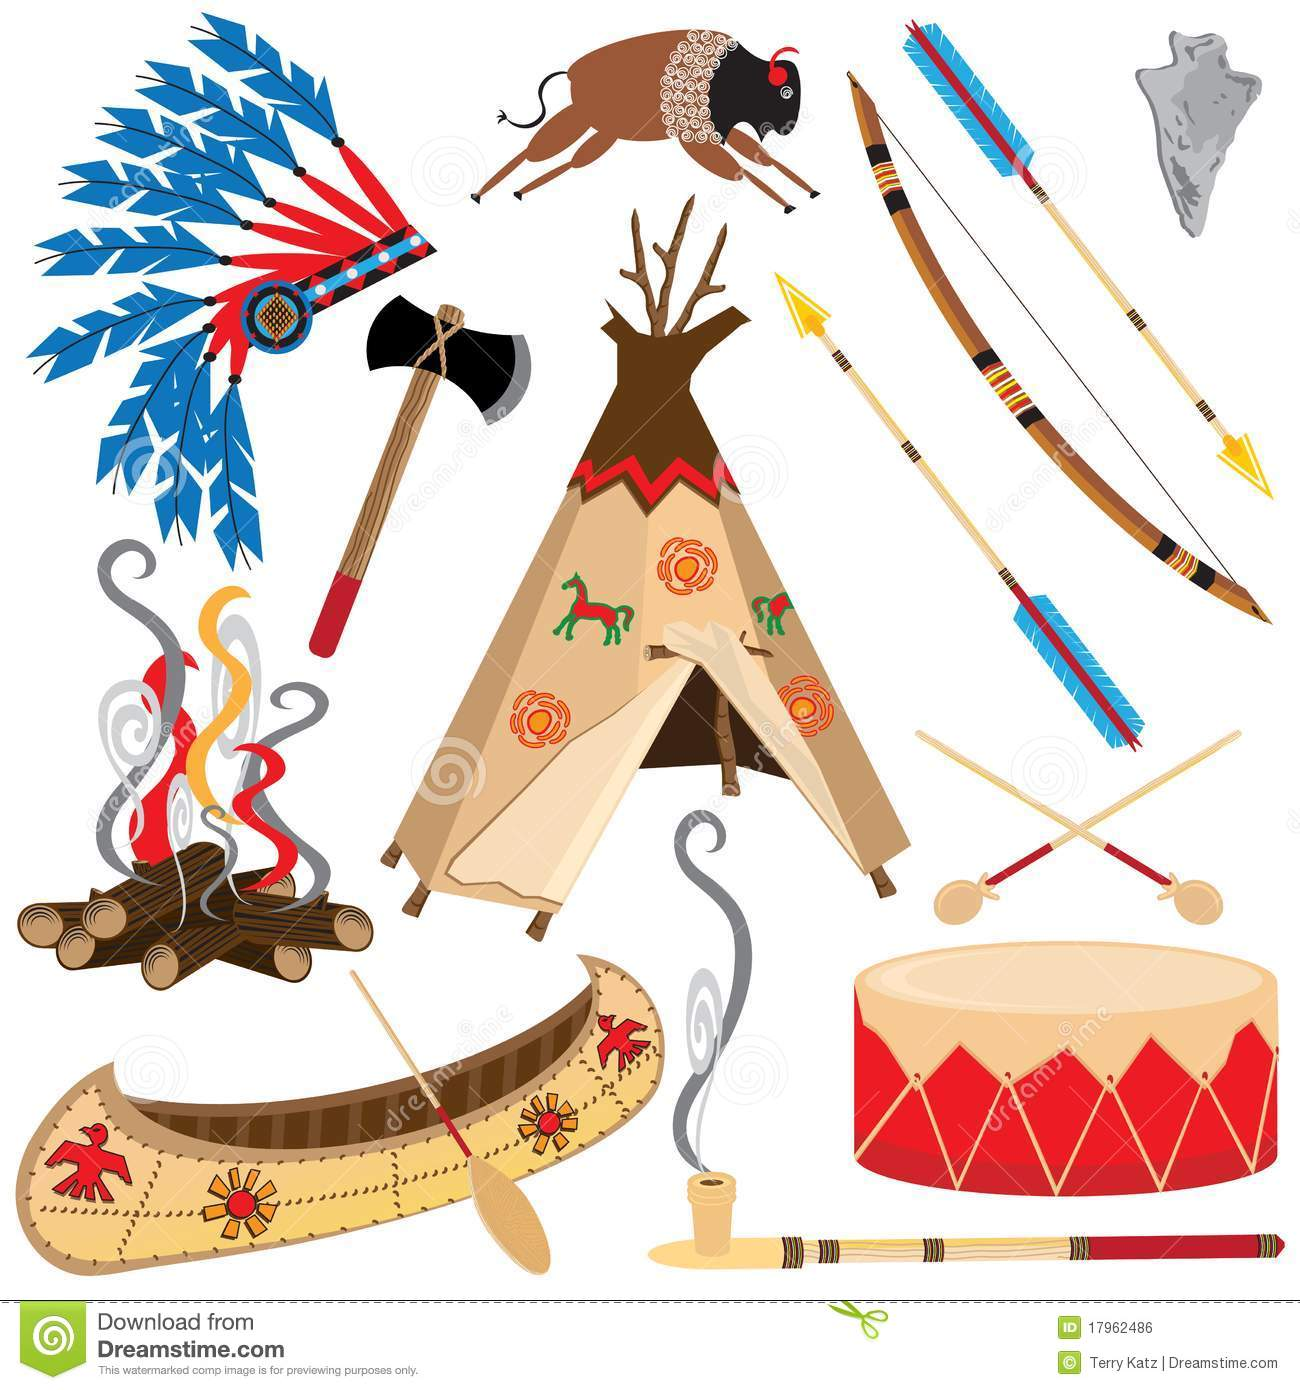 american indian clipart icons stock vector image 17962486 indian clipart kid indian clipart free download how